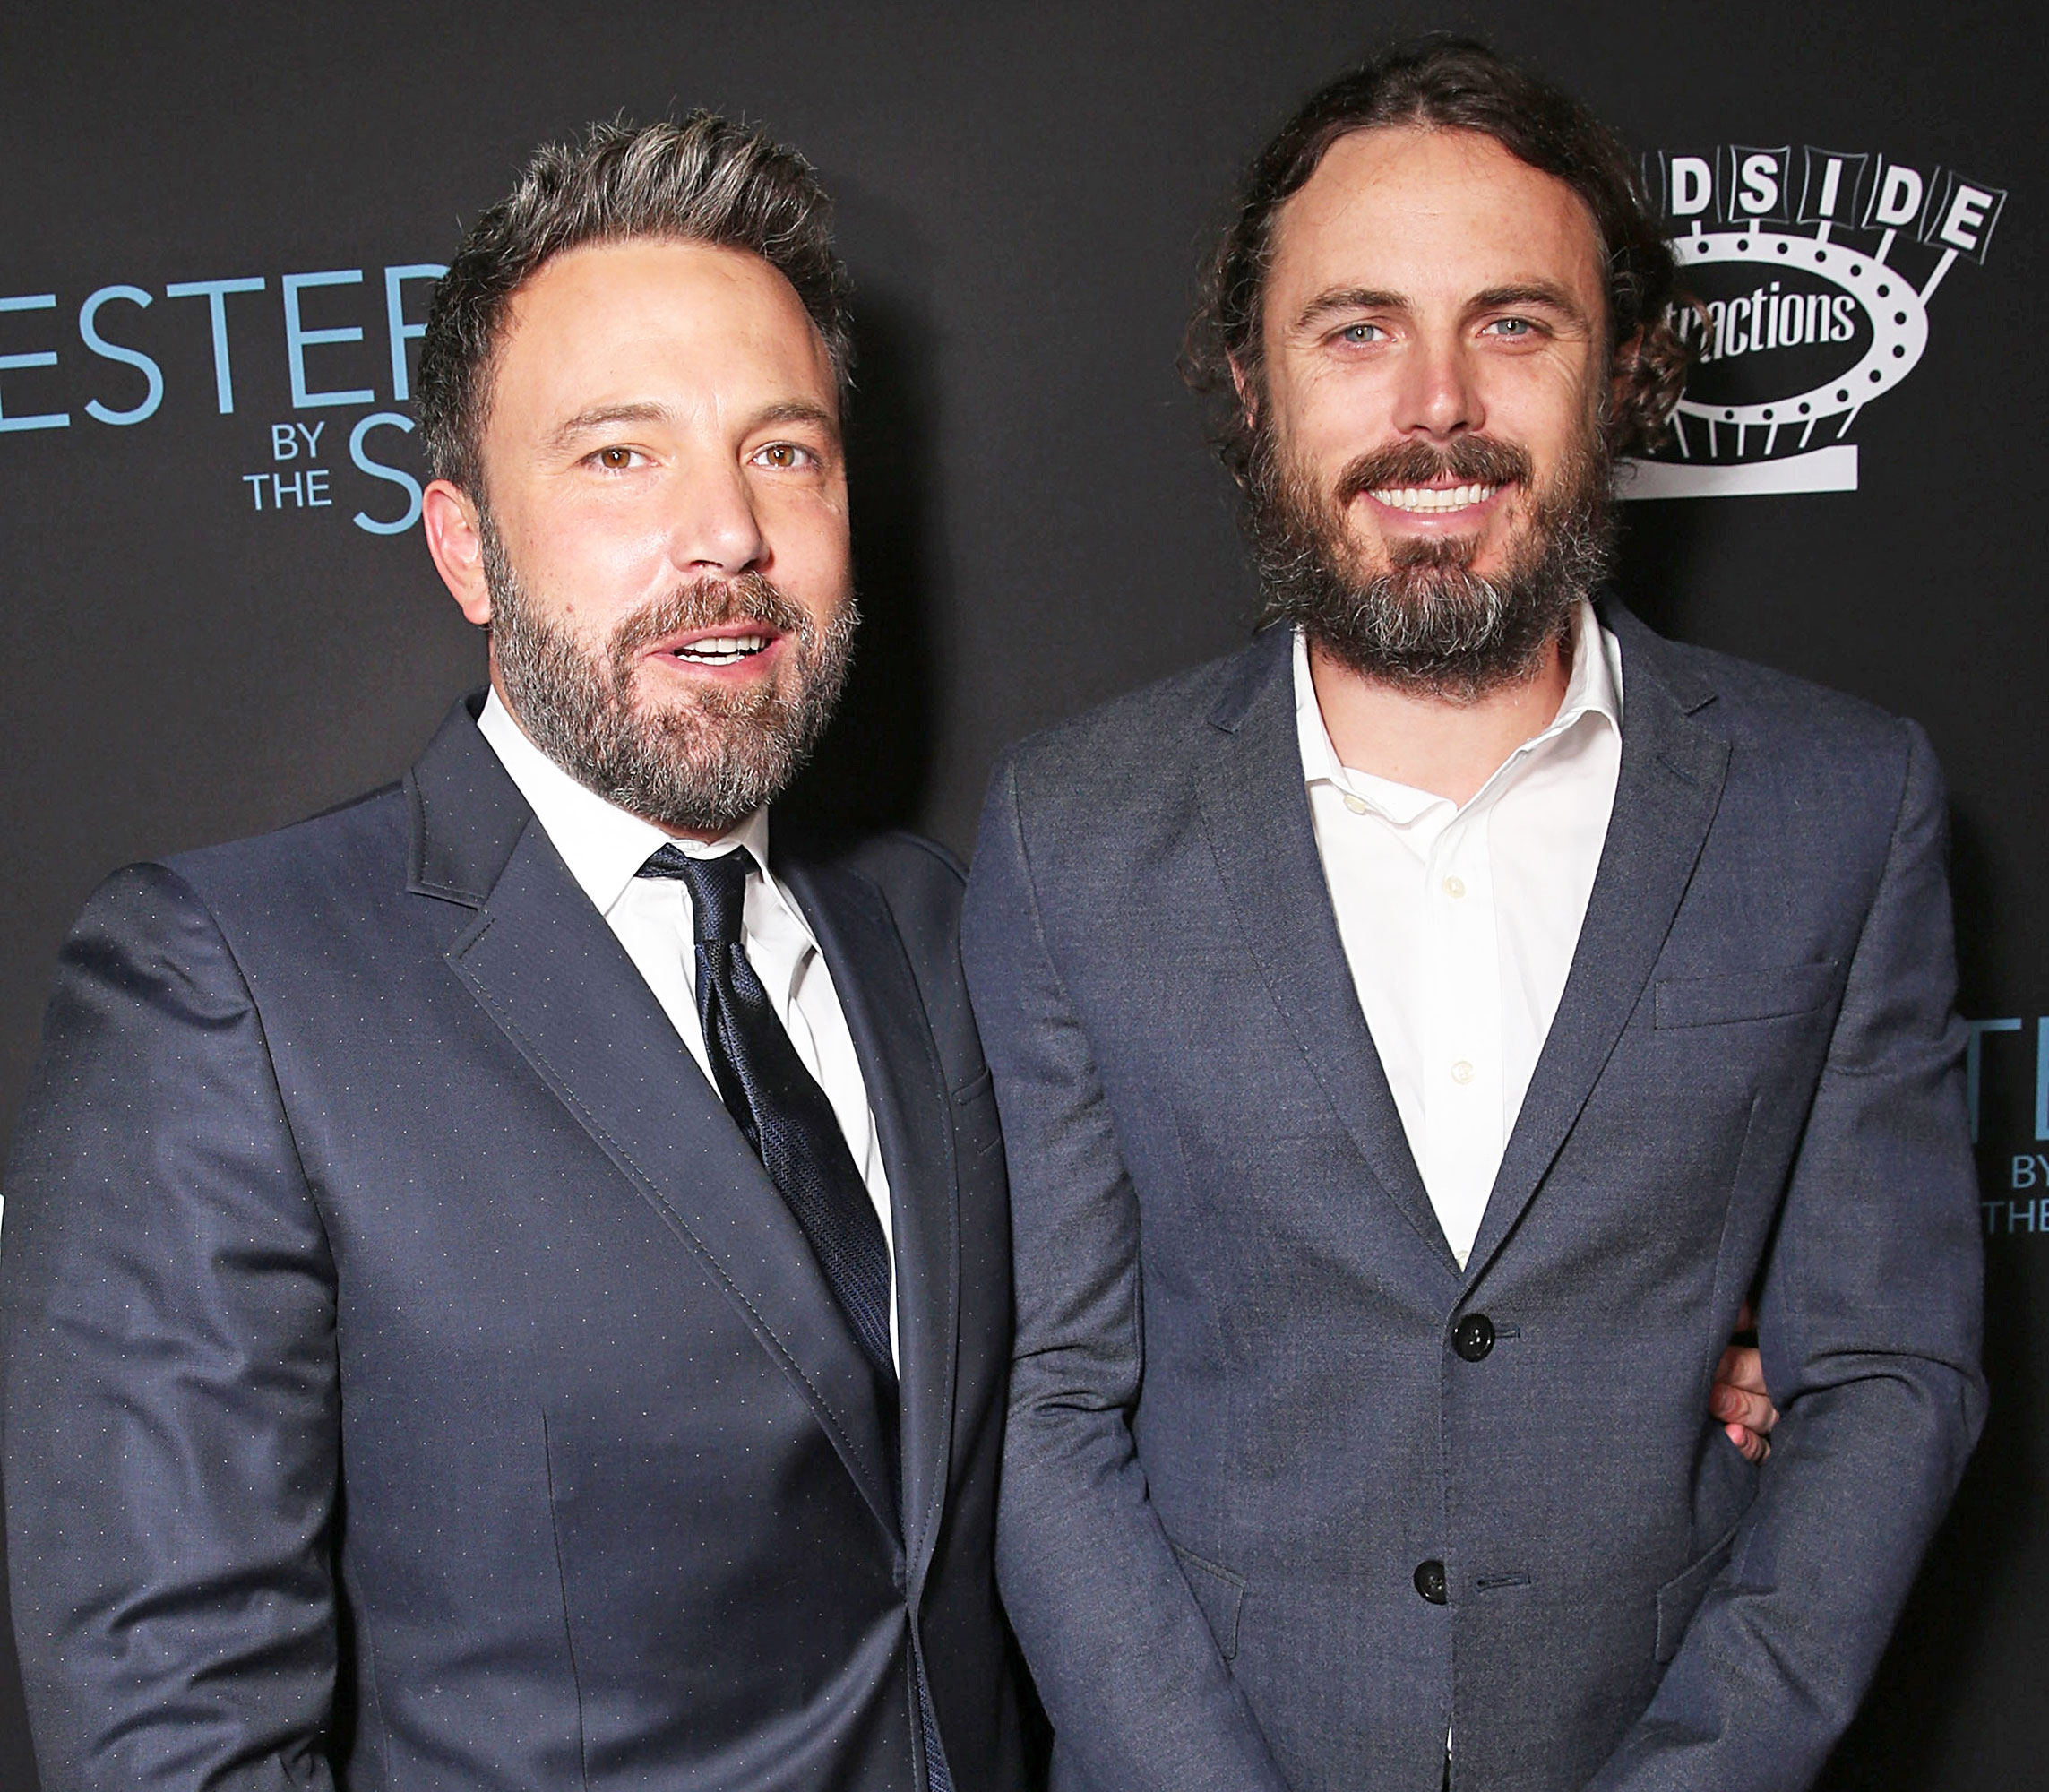 Ben Affleck and Casey Affleck attend the